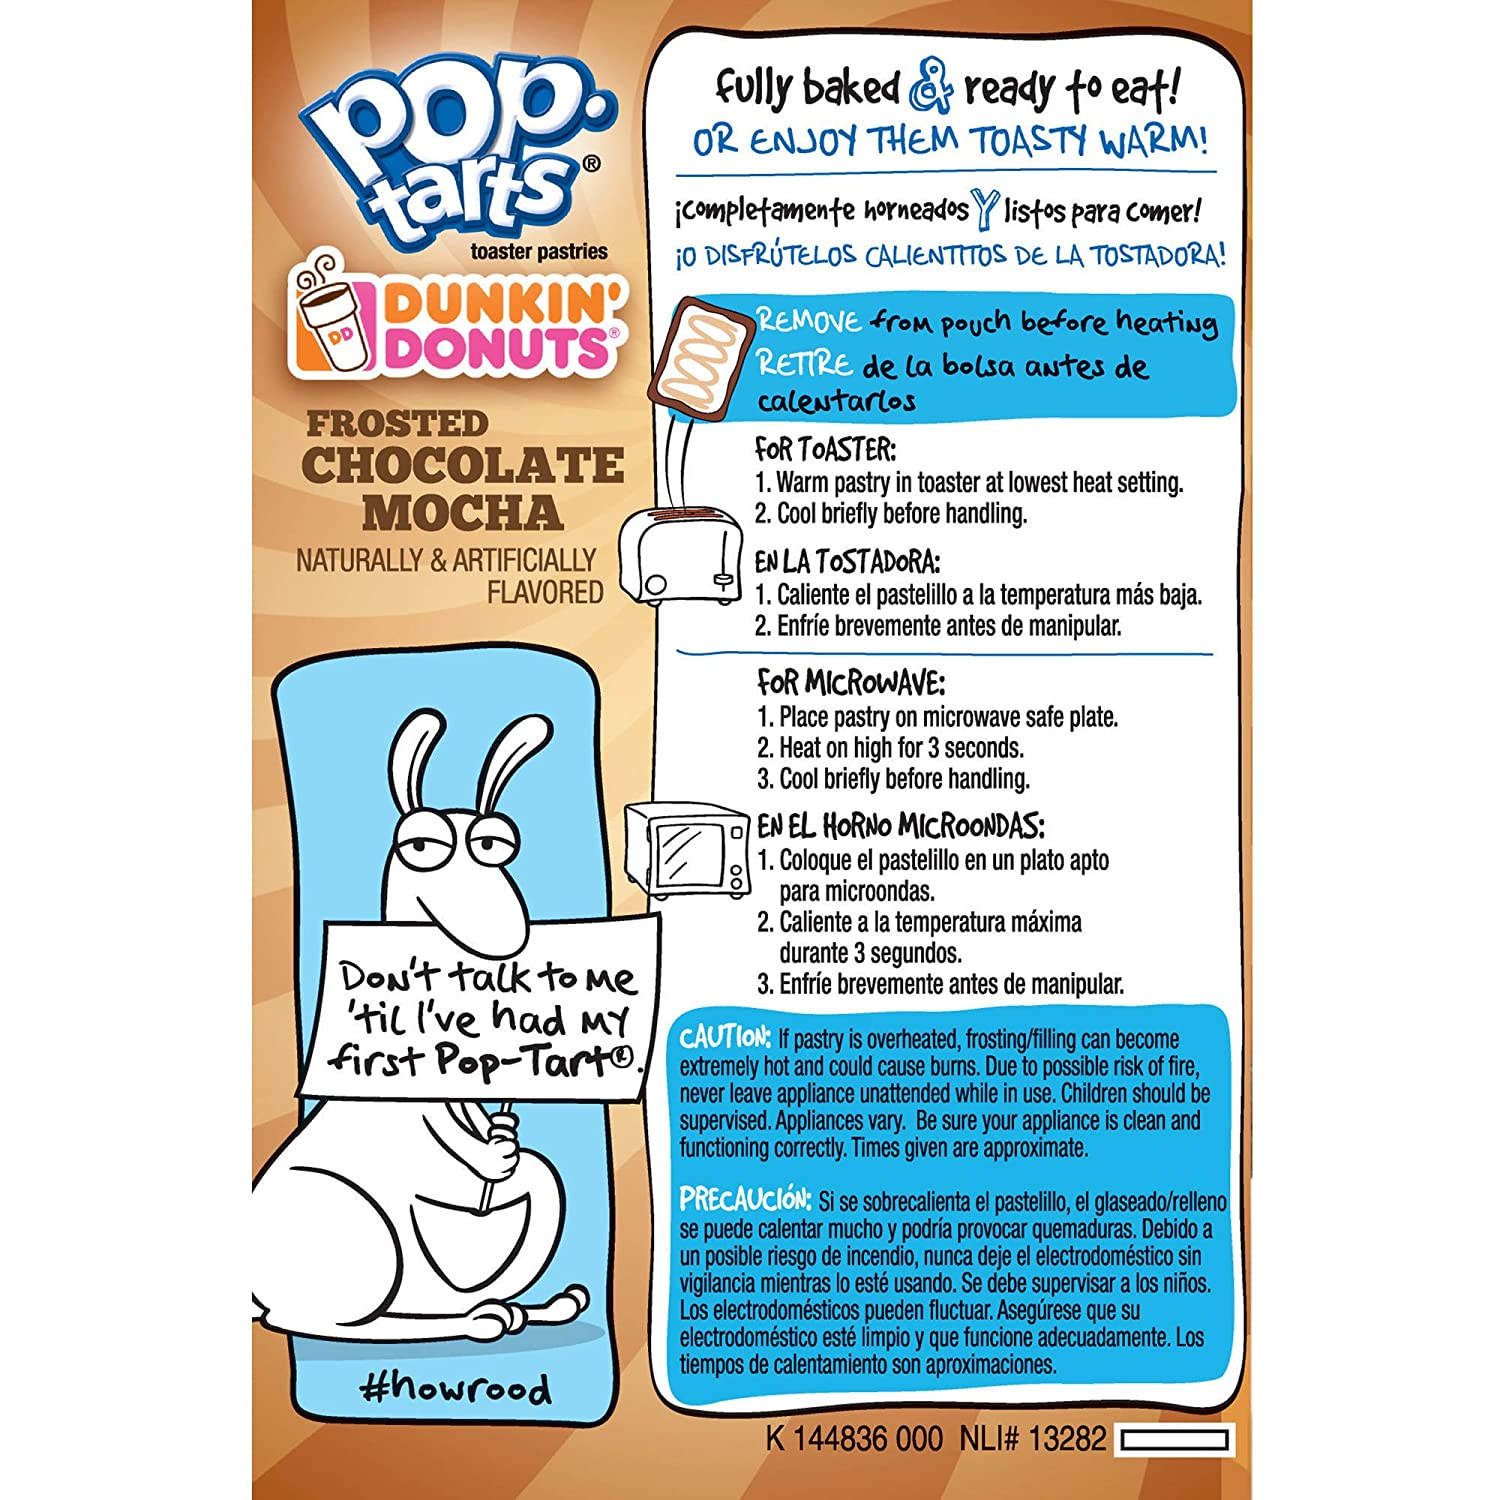 Amazon.com : Pop-Tarts Dunkin Donuts Toaster Pastries, Frosted Chocolate Mocha, 16 Count : Grocery & Gourmet Food